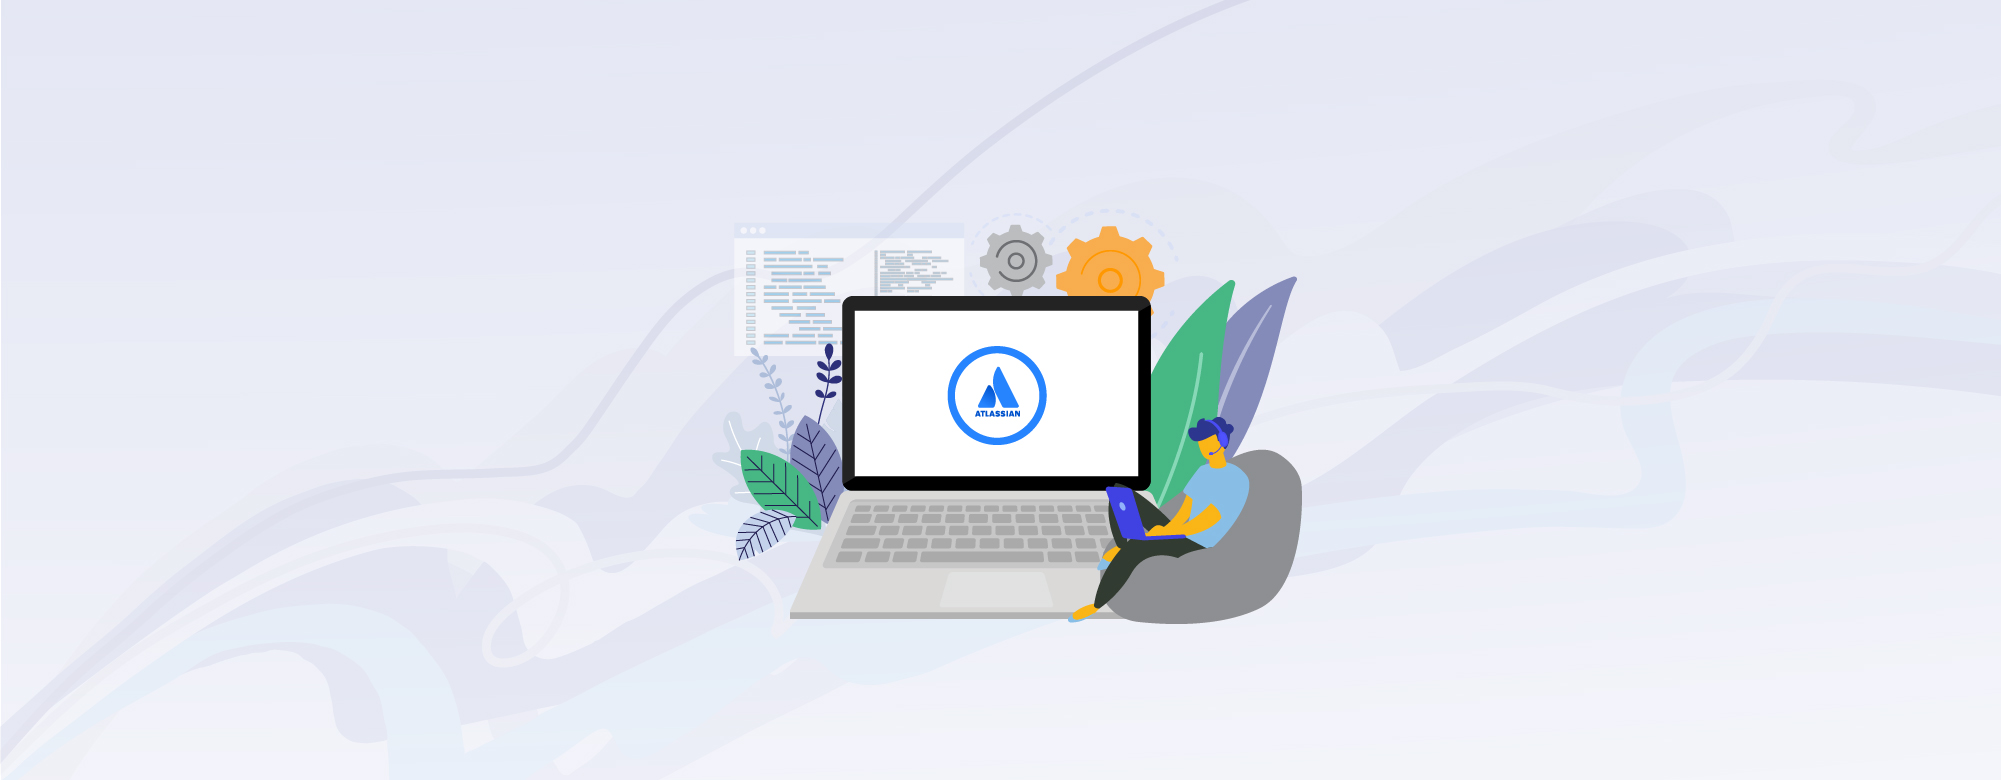 remote training with Atlassian